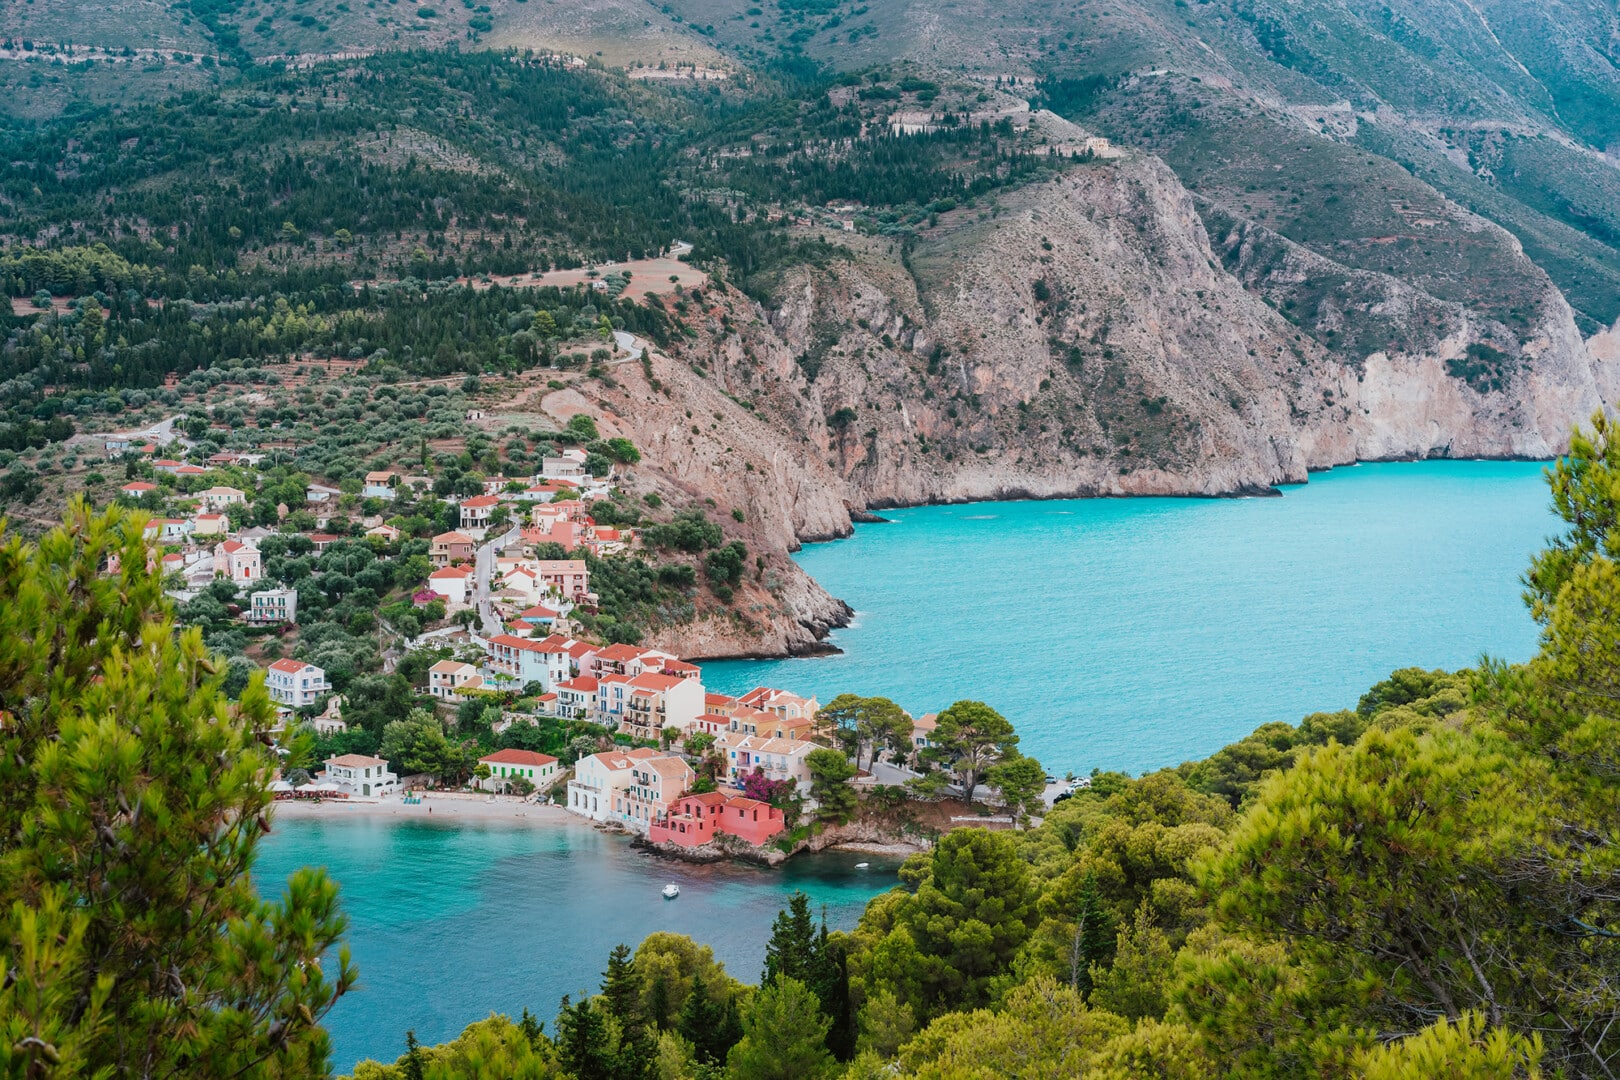 Assos village at Kefalonia island, Greece. Beautiful colorful town at shore with bay lagoon, pine and cypress trees, rocky coastline